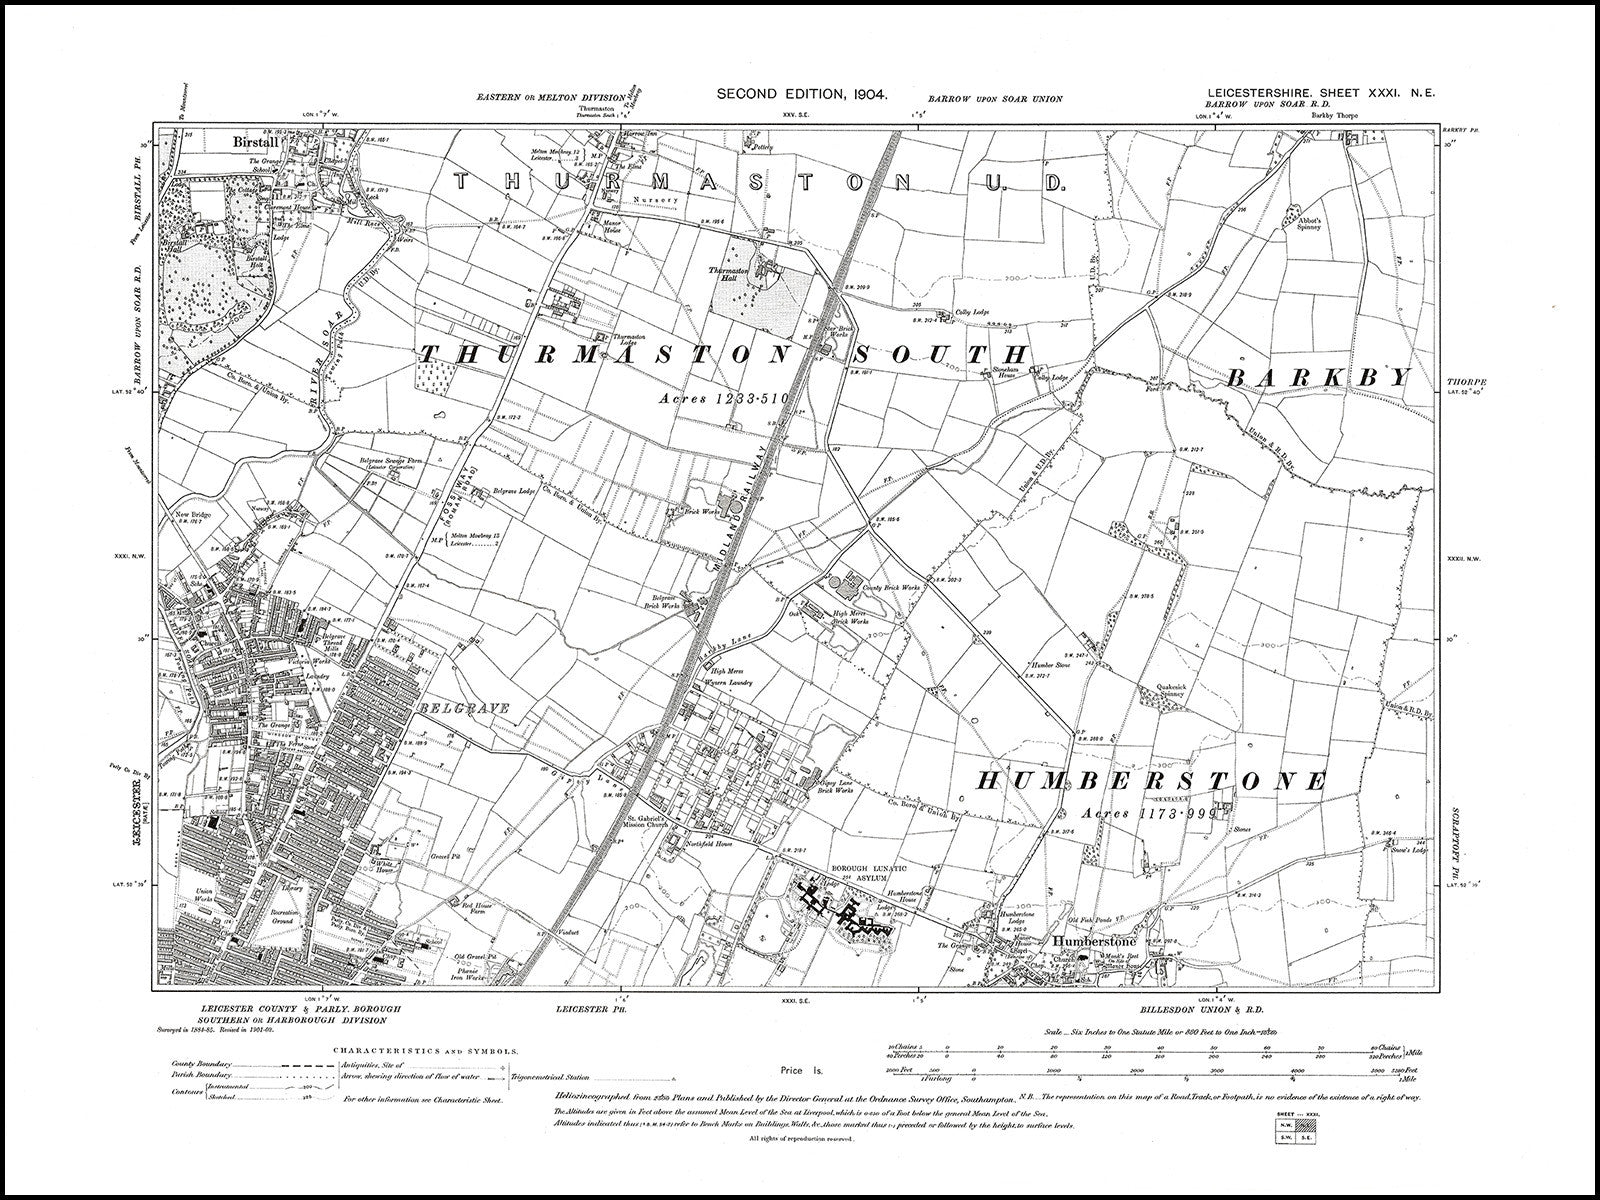 Map Of Uk Leicester.Leicester Ne Humberstone N Birstall S Thurmaston S Leicestershire In 1904 31 Ne